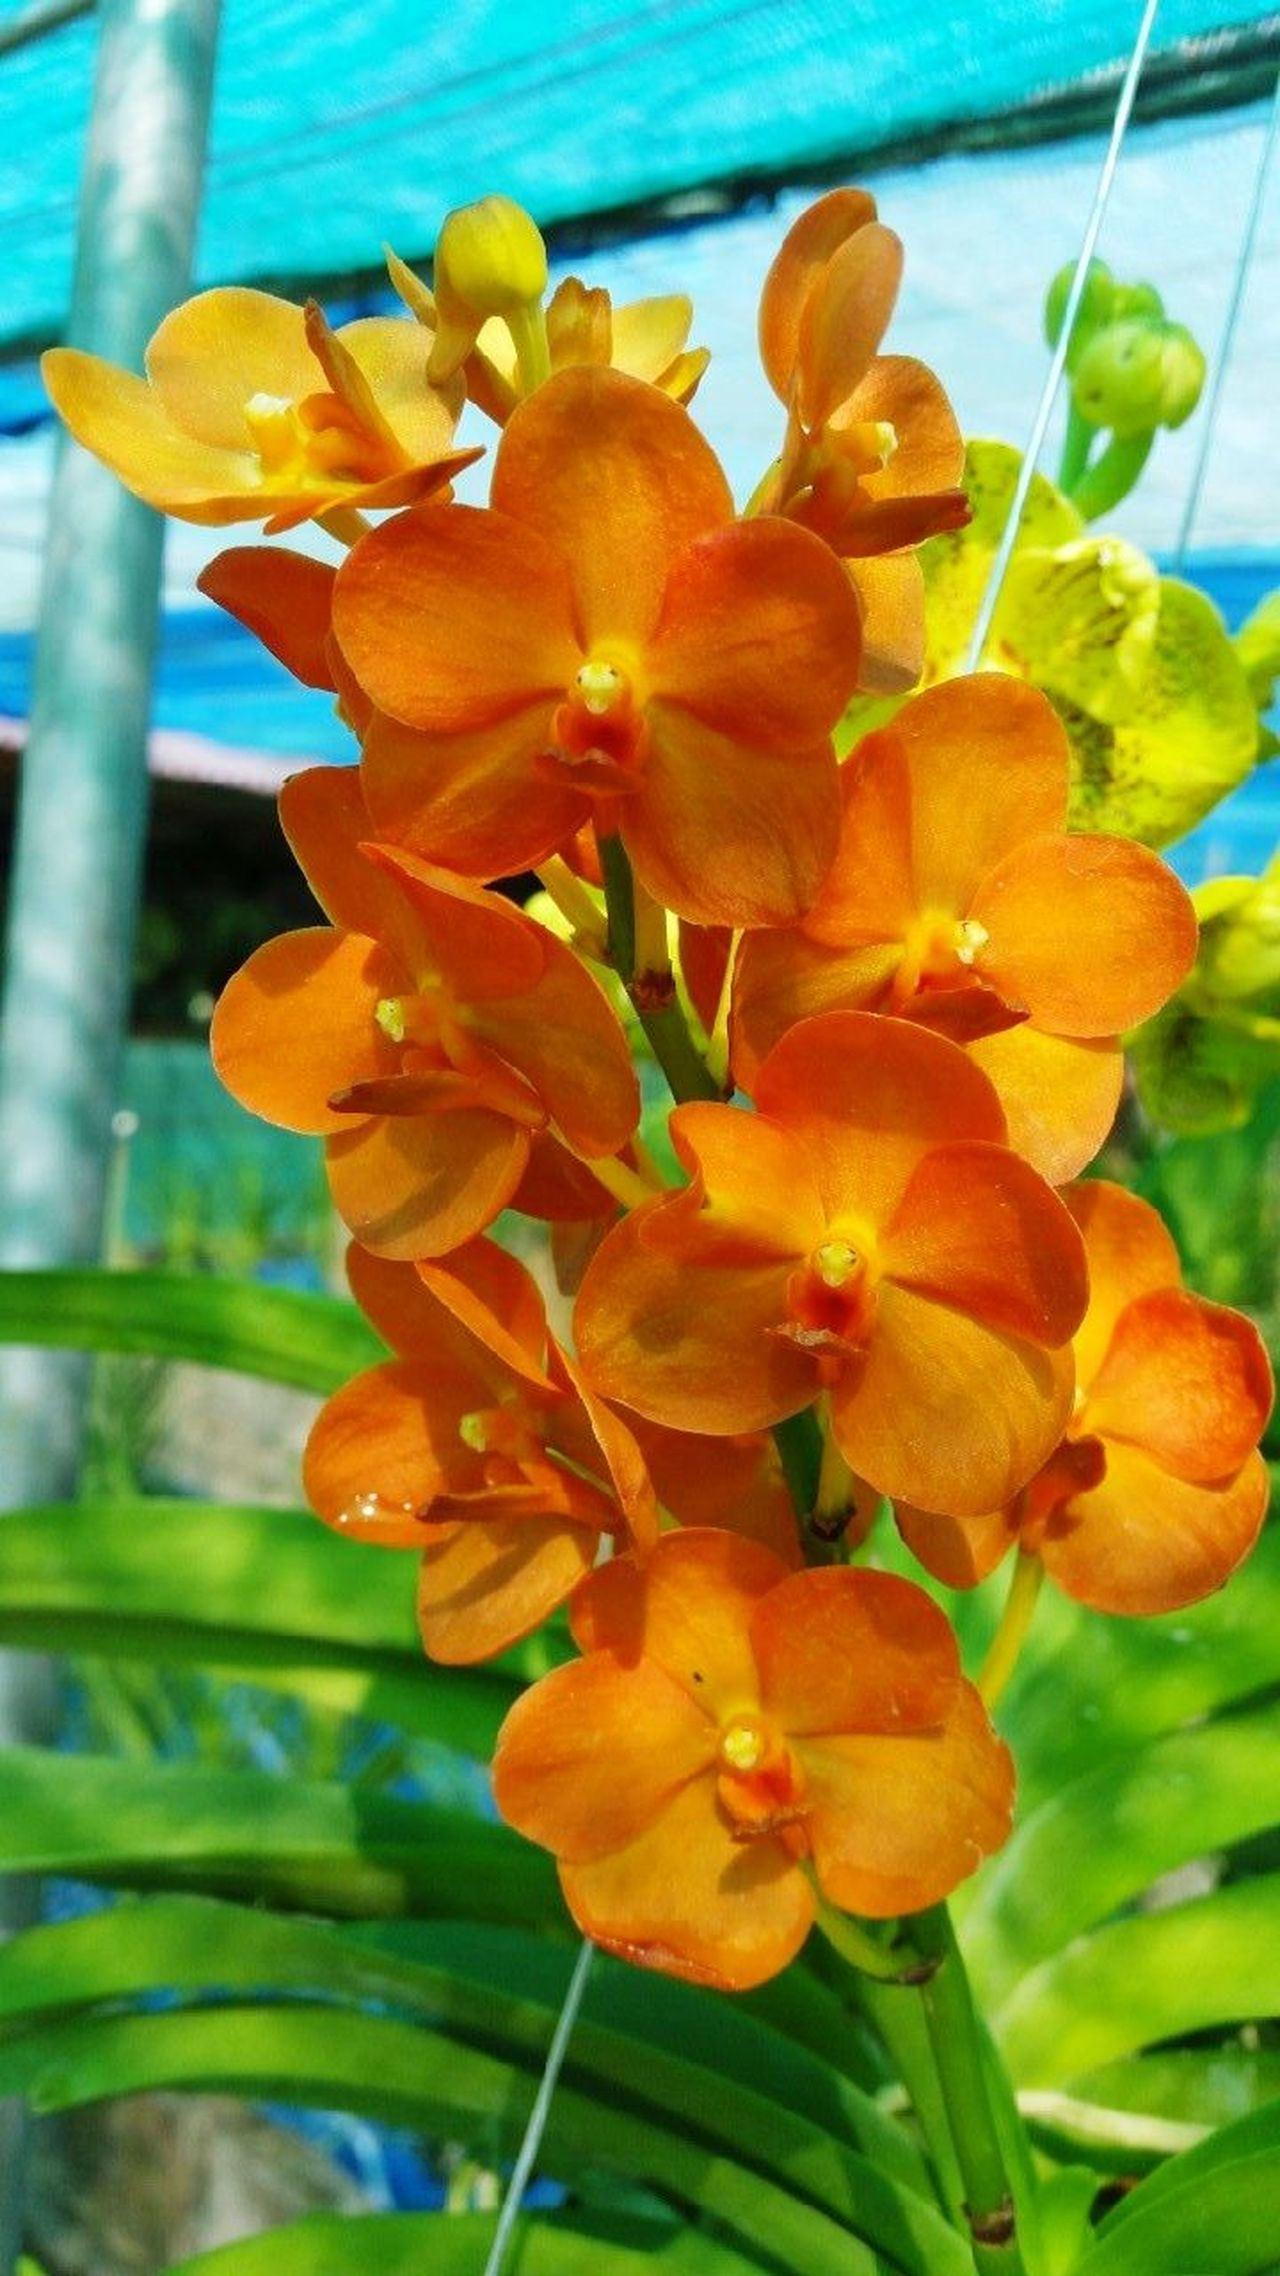 Orchids Orange Petal Orchids Orchard Orchid Blossoms Orchid Flower Orchids Collection Orchid Flowers Orchid Collection Orchids Garden OrchidLover Orchid Flower Nature Freshness Beauty In Nature Plant Outdoors Flower Head Growth Fragility Day No People Close-up Water Leaf orange